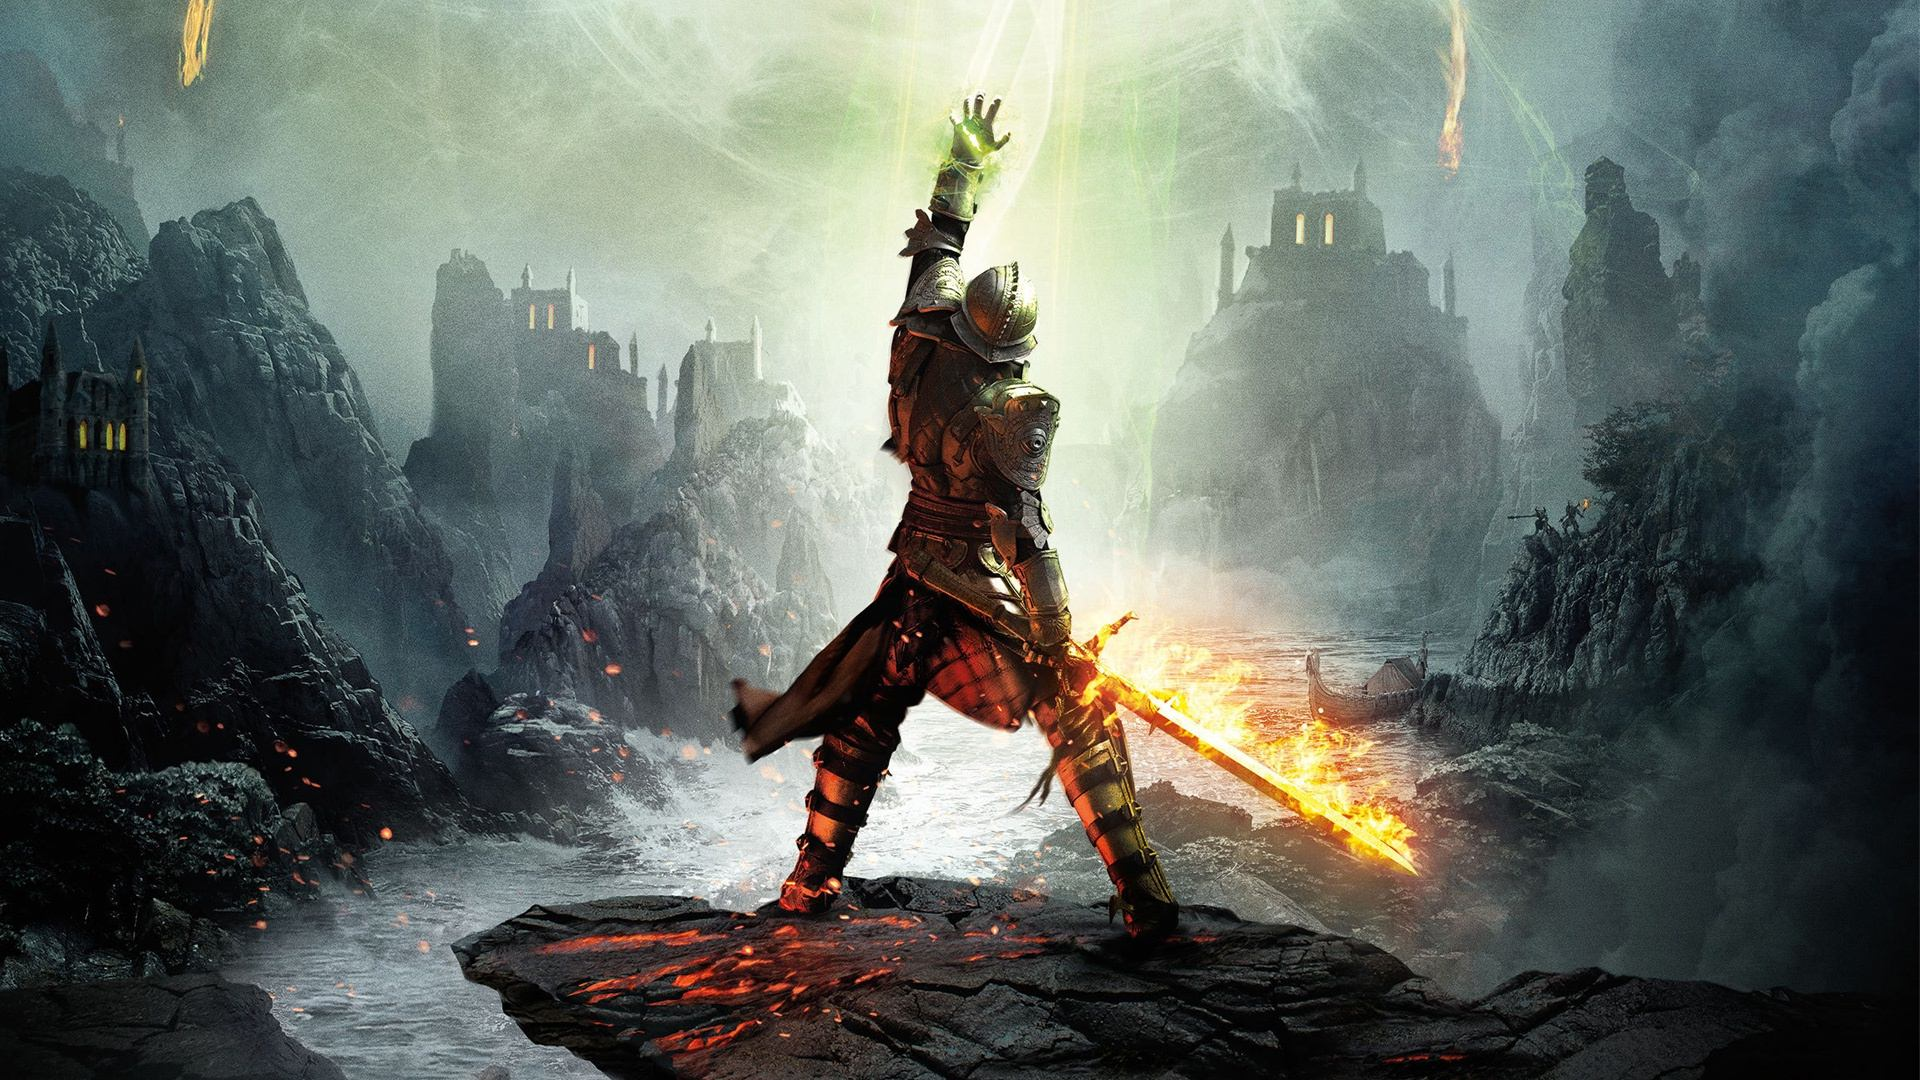 Be a Hero of Thedas in the latest Dragon Age: Inquisition trailer